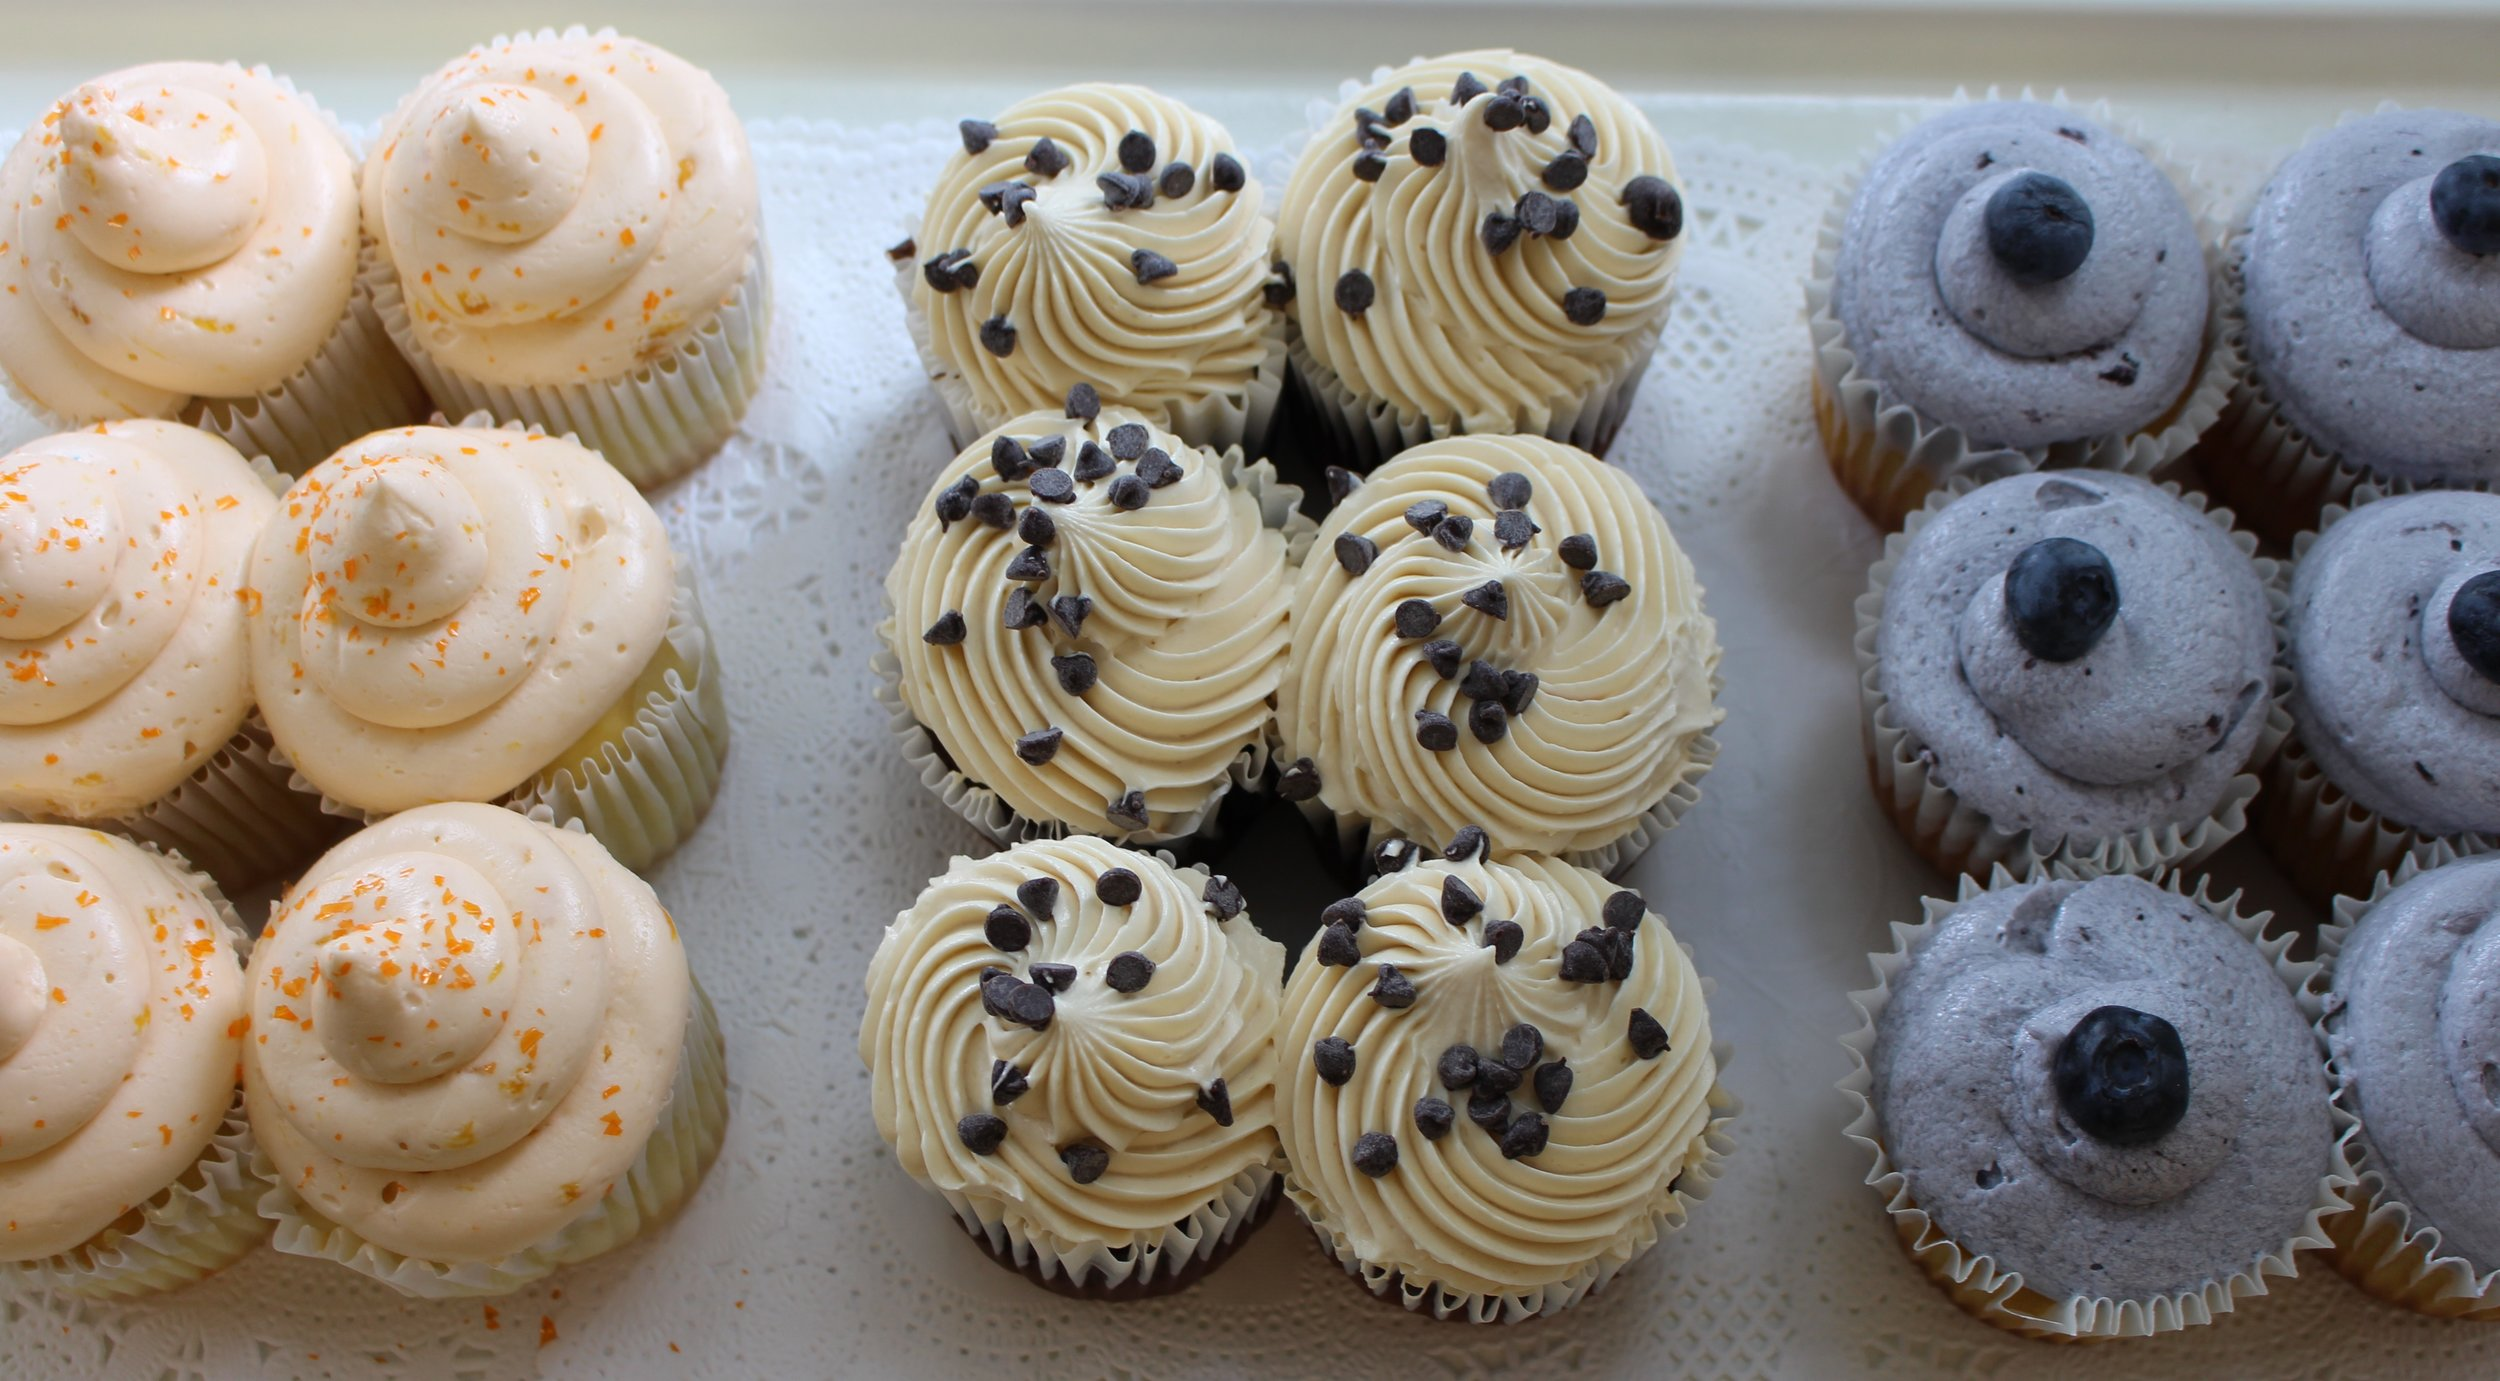 Assorted cupcakes from our cupcake bar. Cupcakes shown include peach, chocolate peanut butter, and blueberry